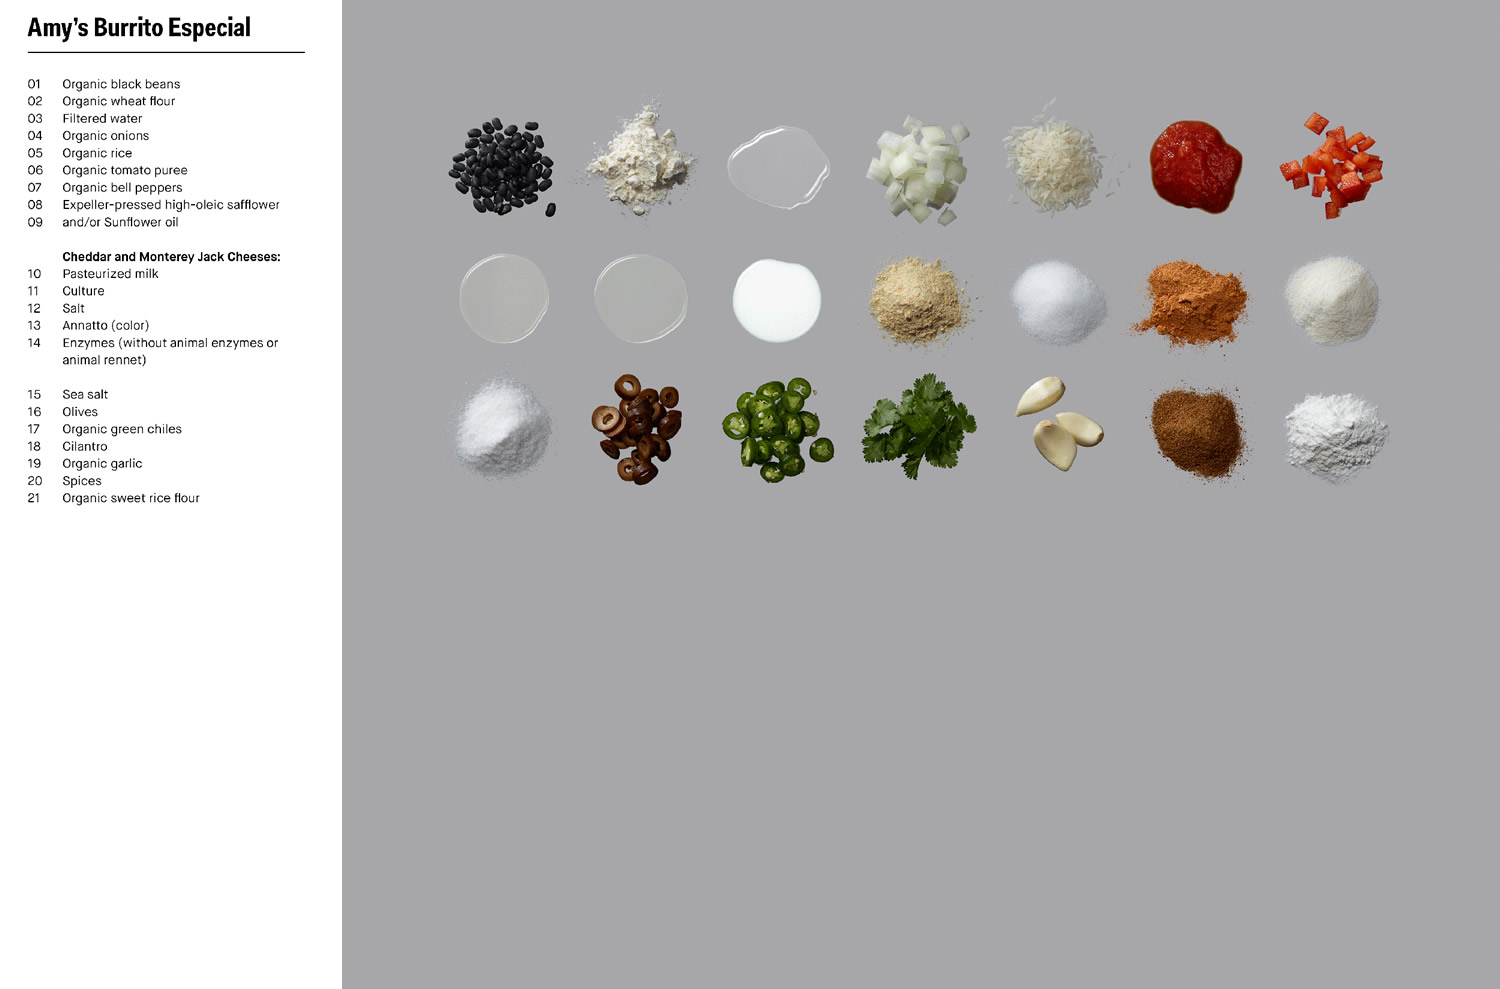 Ingredients, di Dwight Eschliman e Steve Ettlinger, Regan Arts 2015